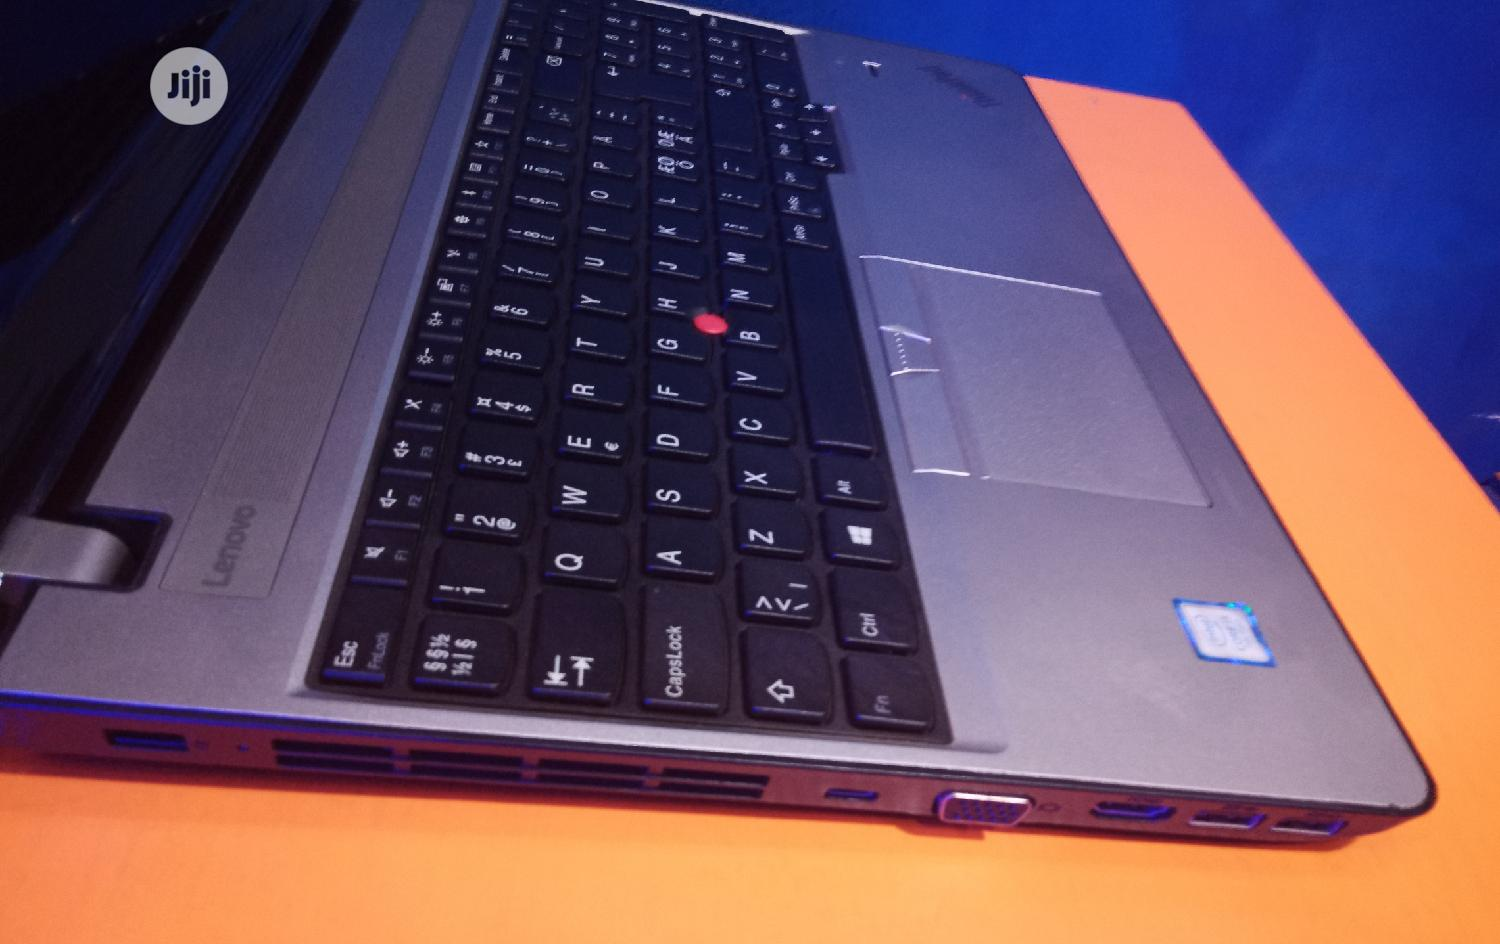 Laptop Lenovo ThinkPad E570 8GB Intel Core i5 HDD 1T | Laptops & Computers for sale in Ikeja, Lagos State, Nigeria